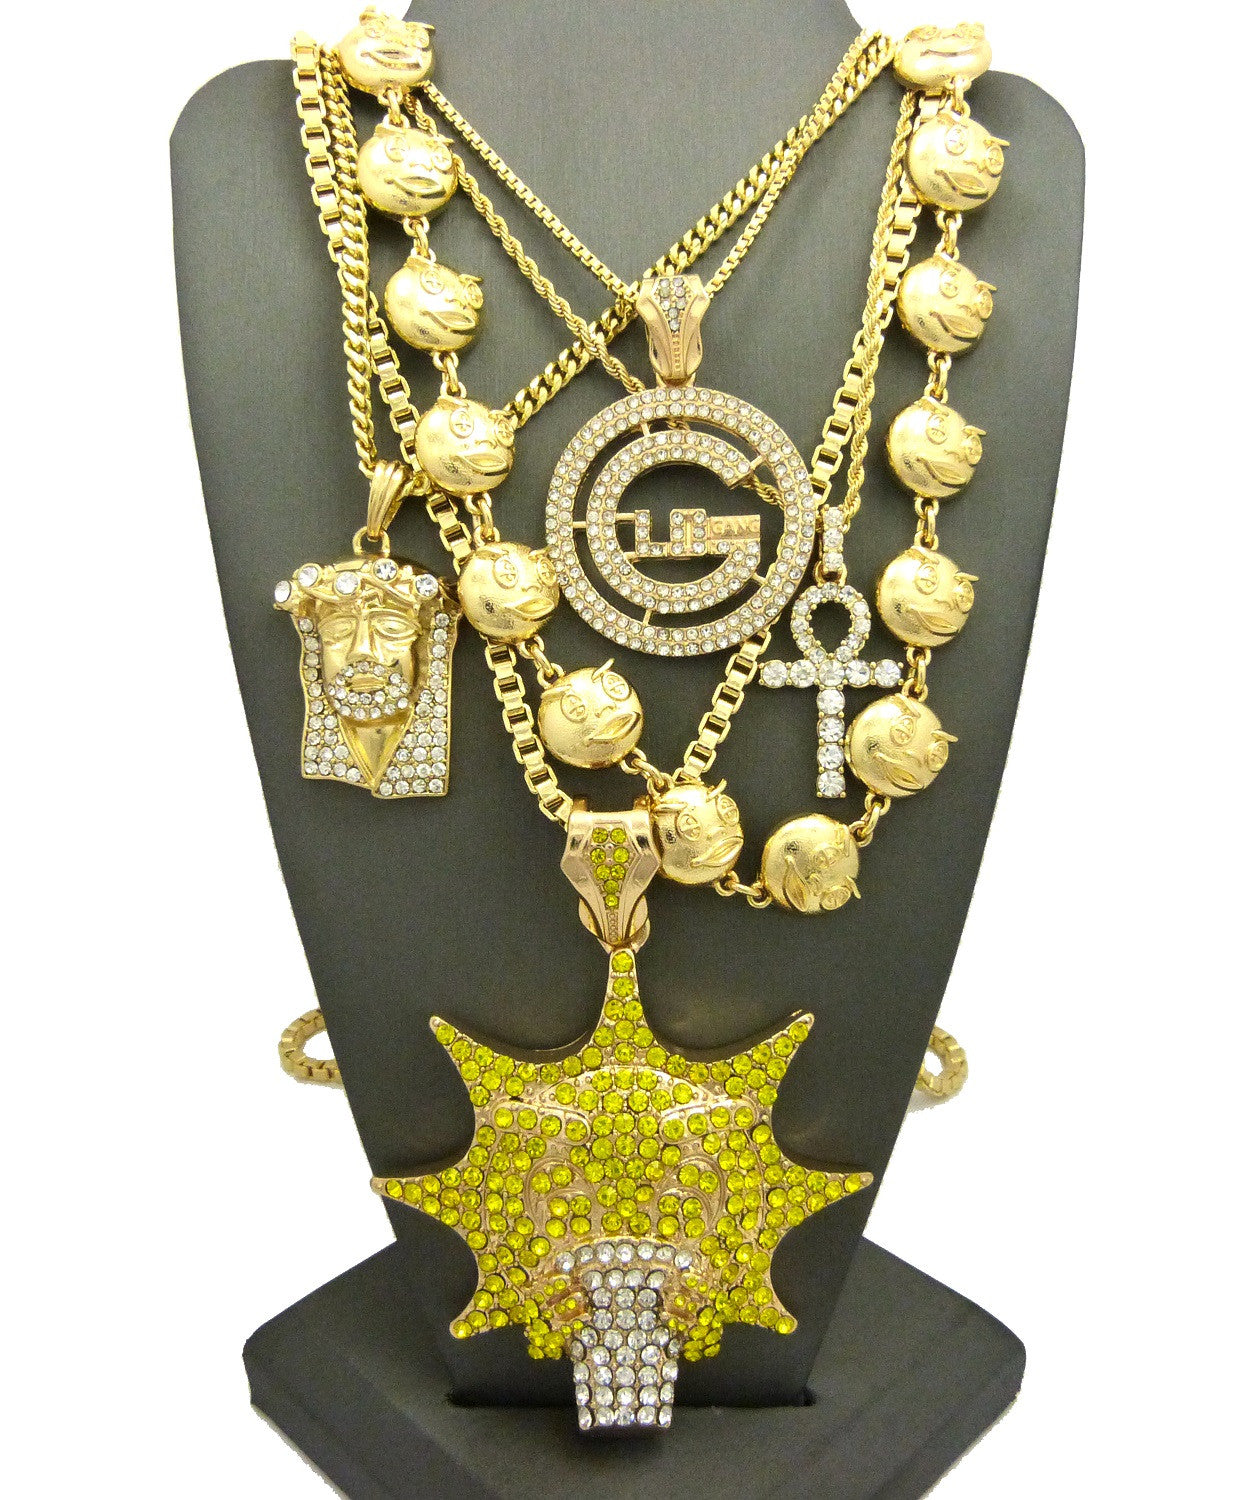 24k 5 Chain Set: Supper Iced Out Glo Man, Glo Rosary, Iced Out Jesus Piece, Big G, and Ankh Chain